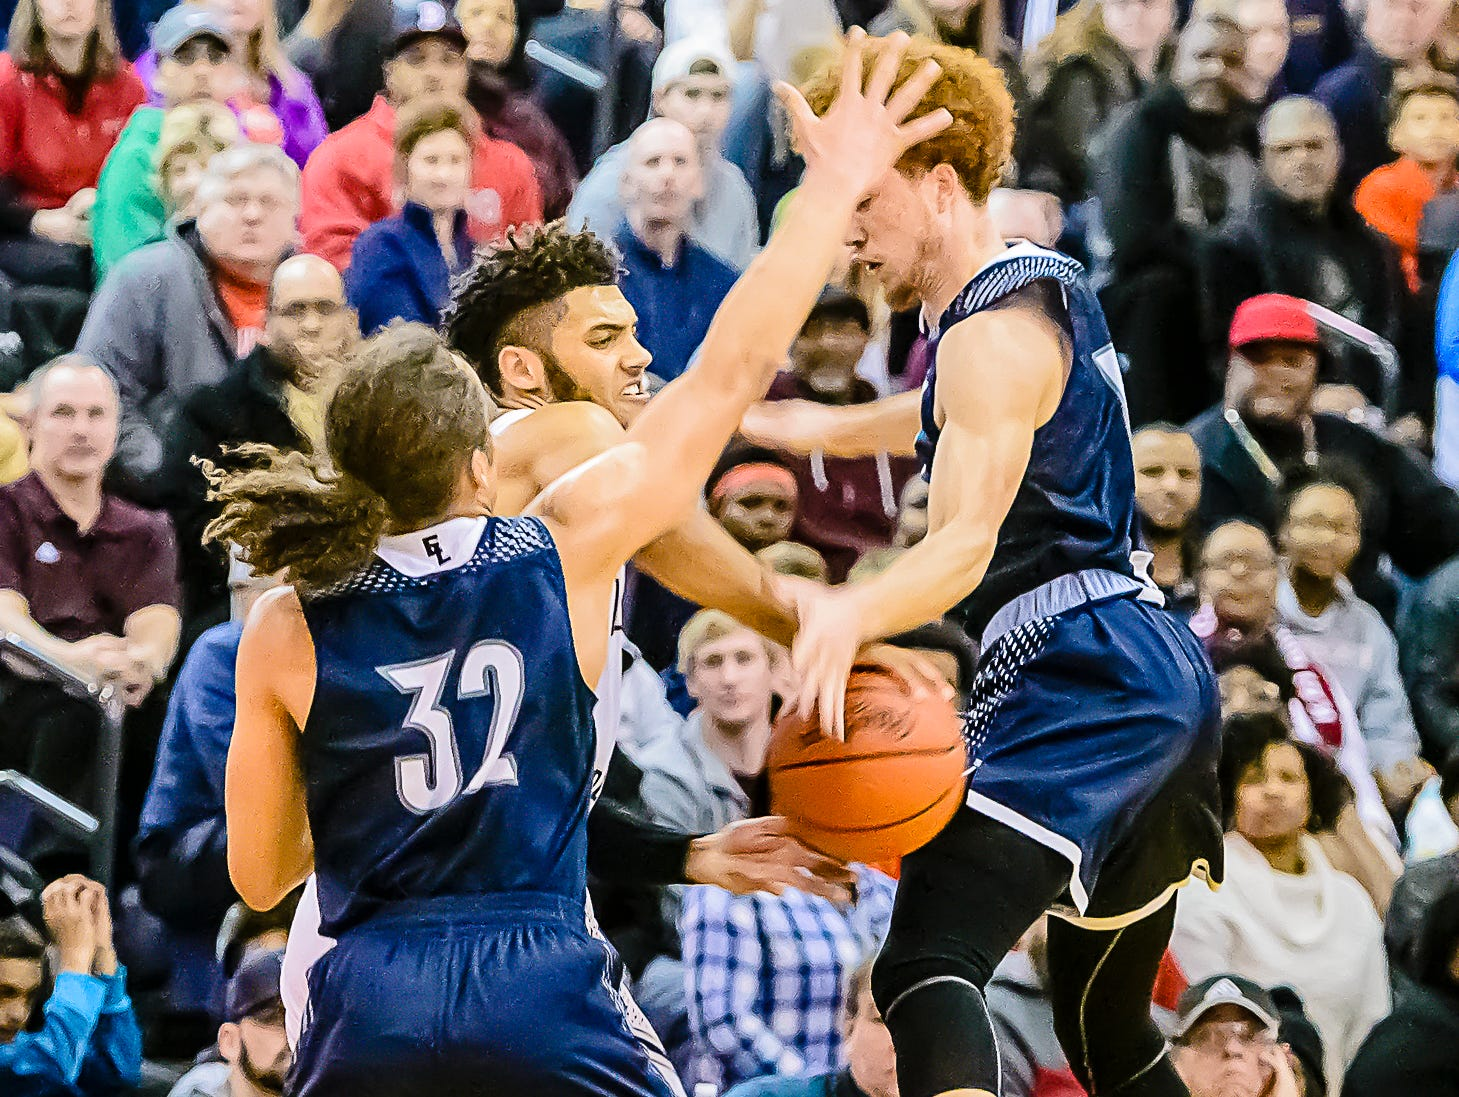 Deandre Robinson ,right, of East Lansing gets a hand on the ball to force a turnover as Isaiah Livers ,center, of Kalamazoo Central attempts to pass out of a double team late in the 2nd quarter of their Class A Regional Final game Wednesday March 15, 2017 at Gull Lake High School in Richland.